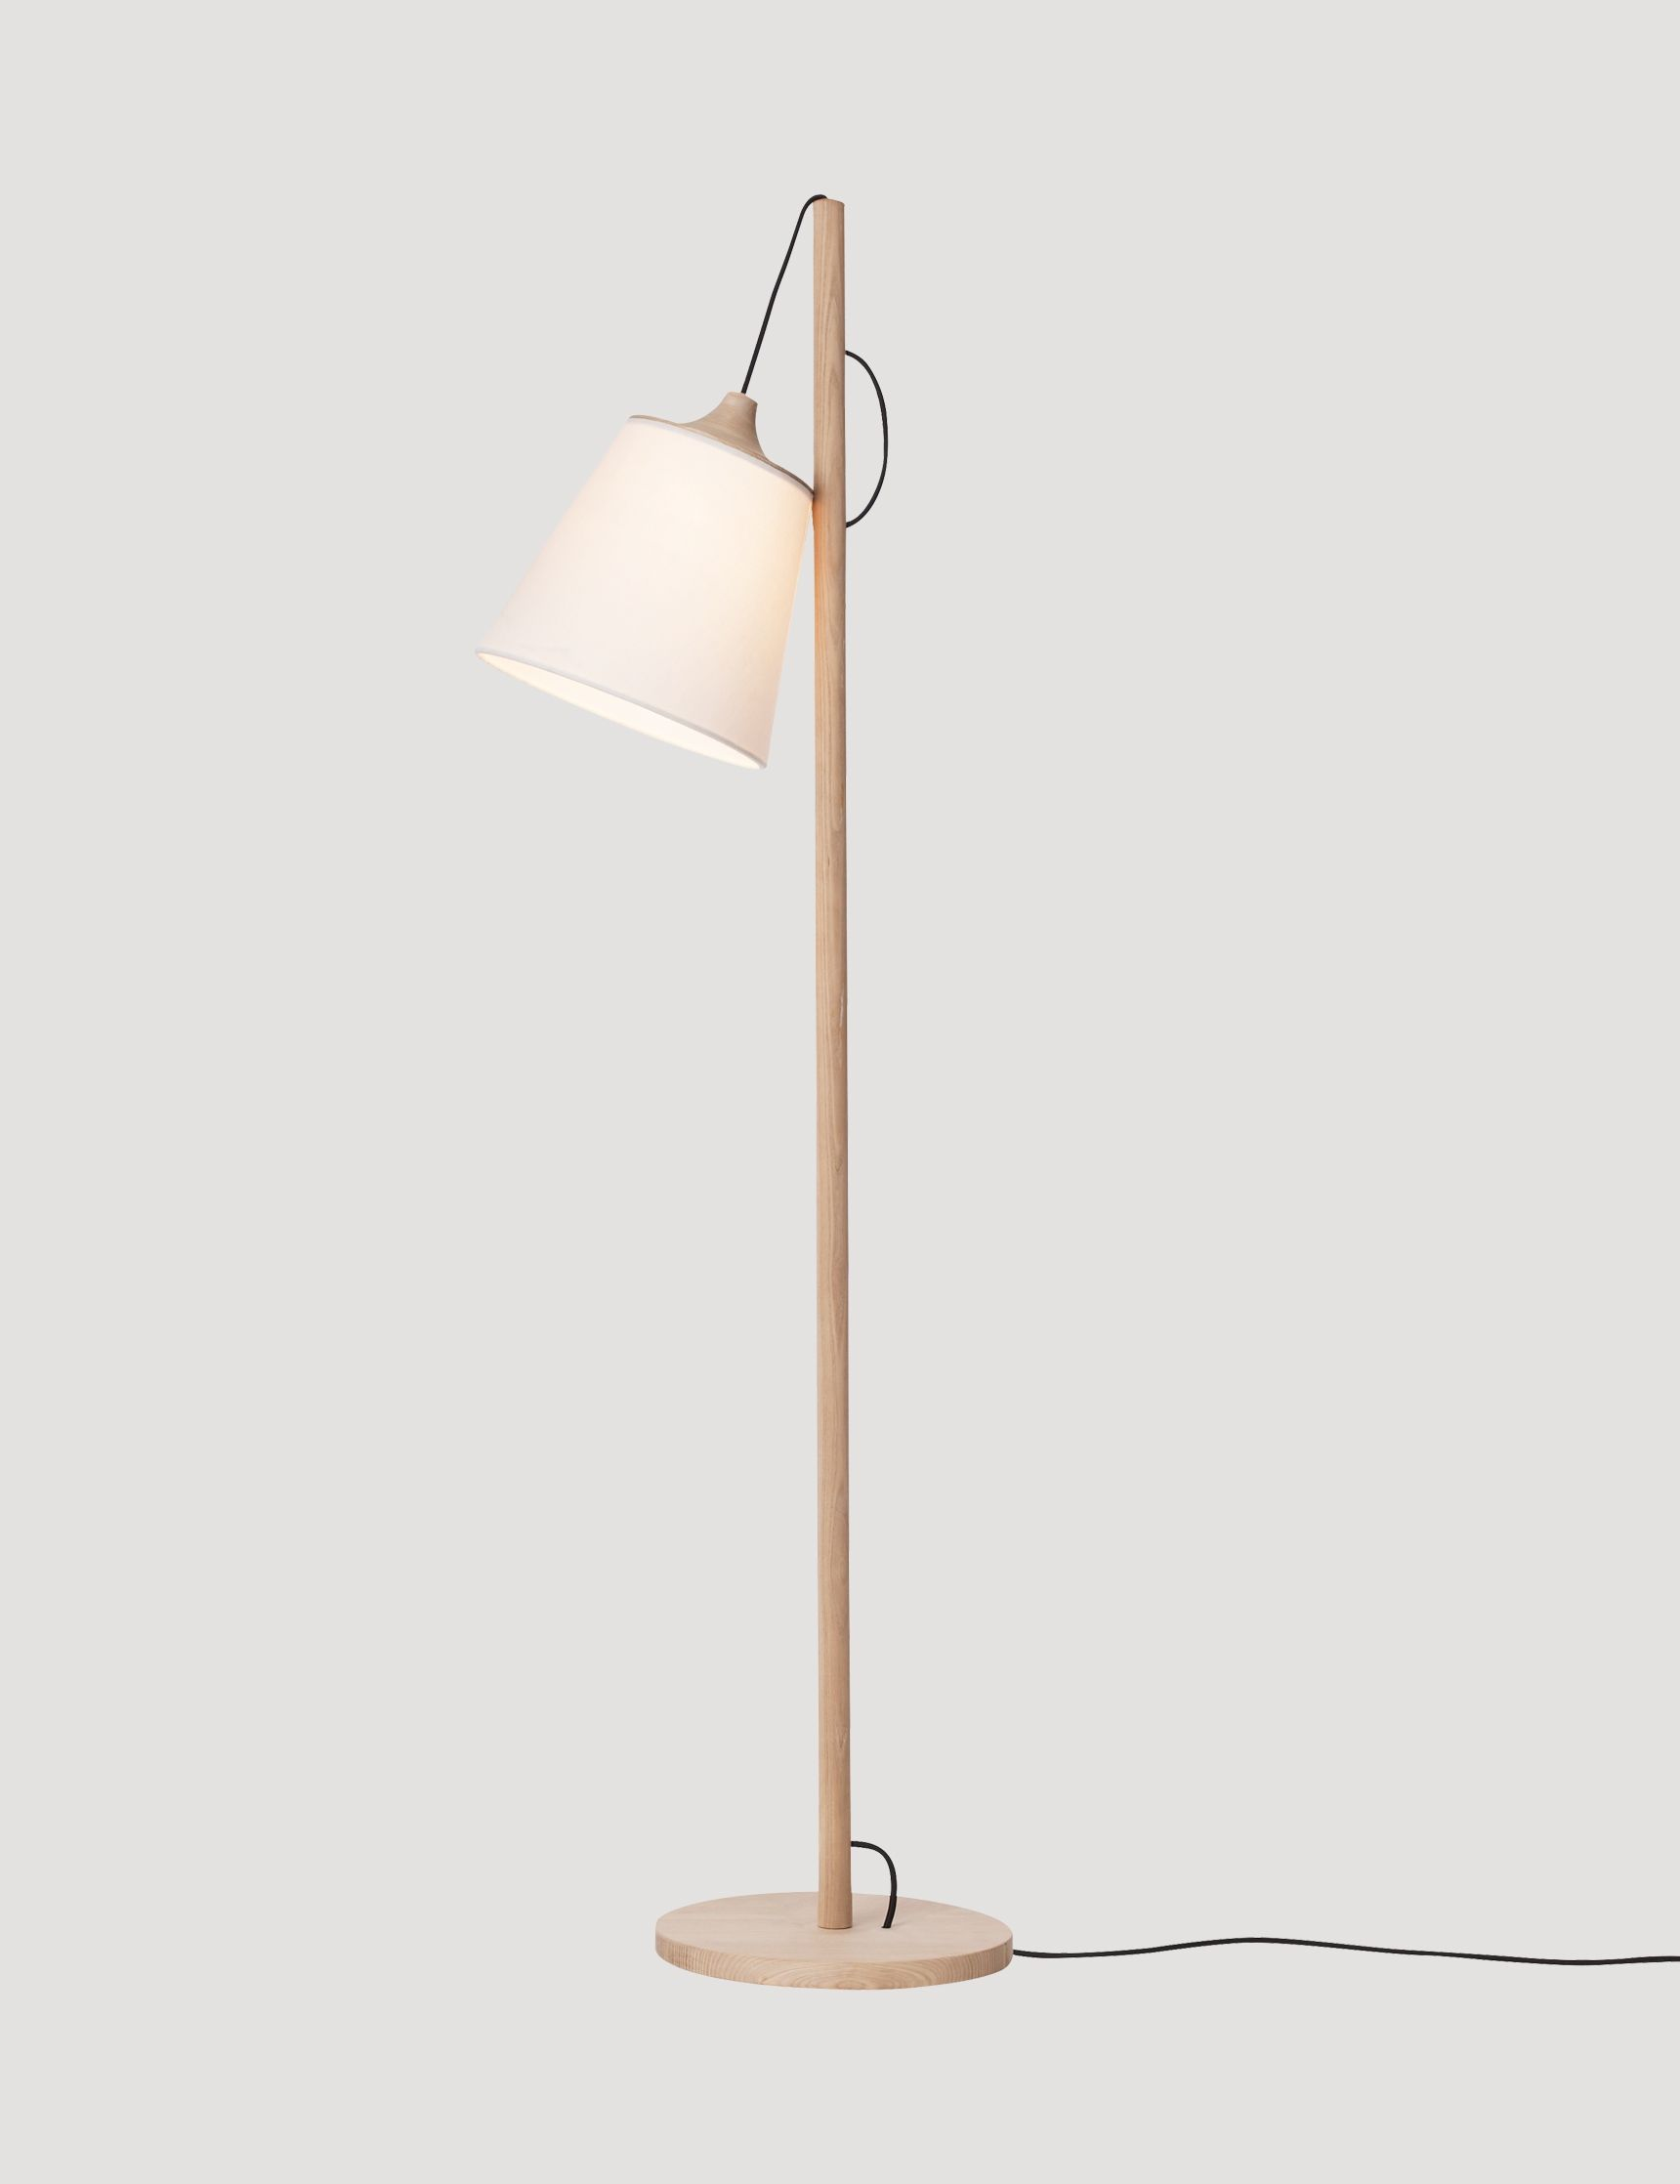 Minimal Furnishings And Design By Muuto Scandinavian Floor Lamps Floor Lamp Lighting Floor Lamp